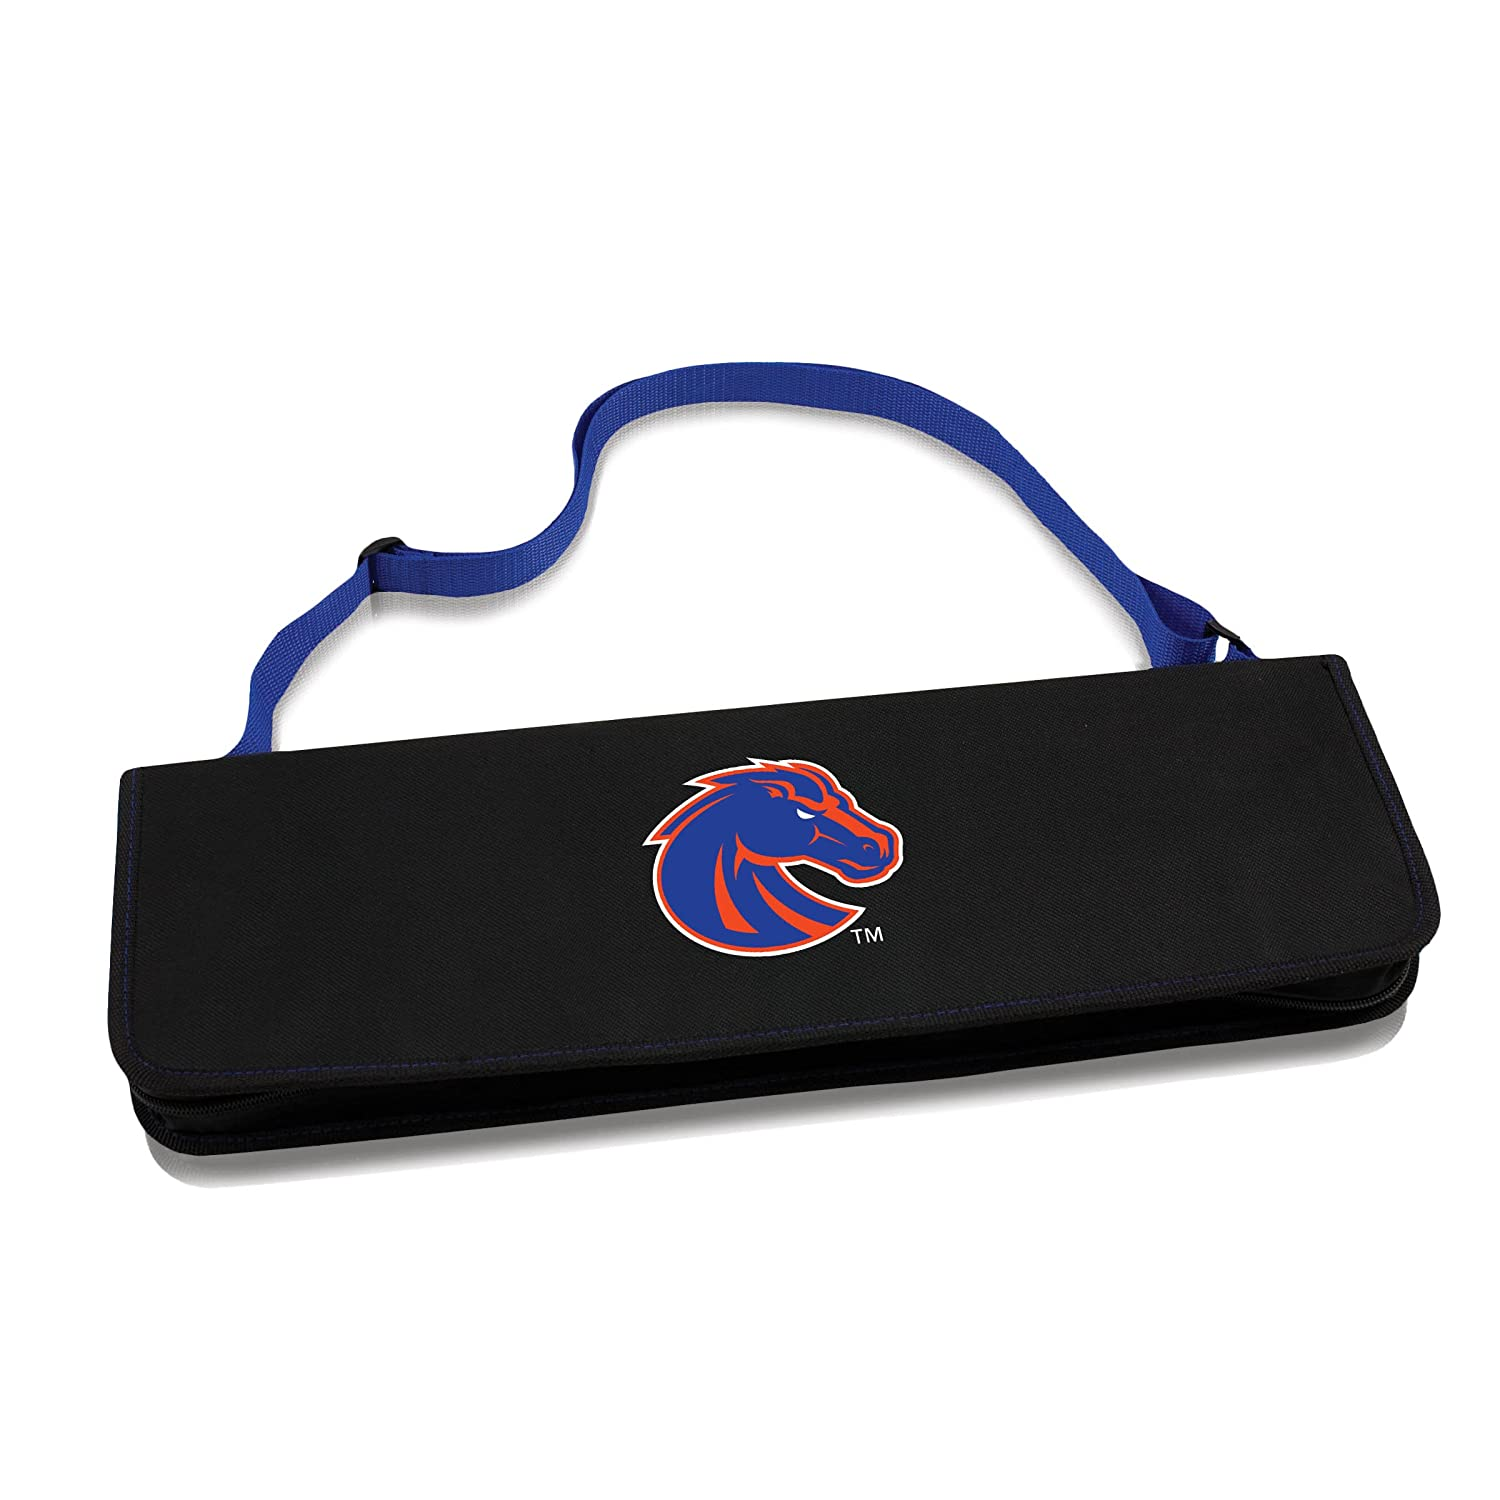 NCAA Boise State Broncos Metro 3ピースBBQツールセットin Carryケース B004OHTHMW